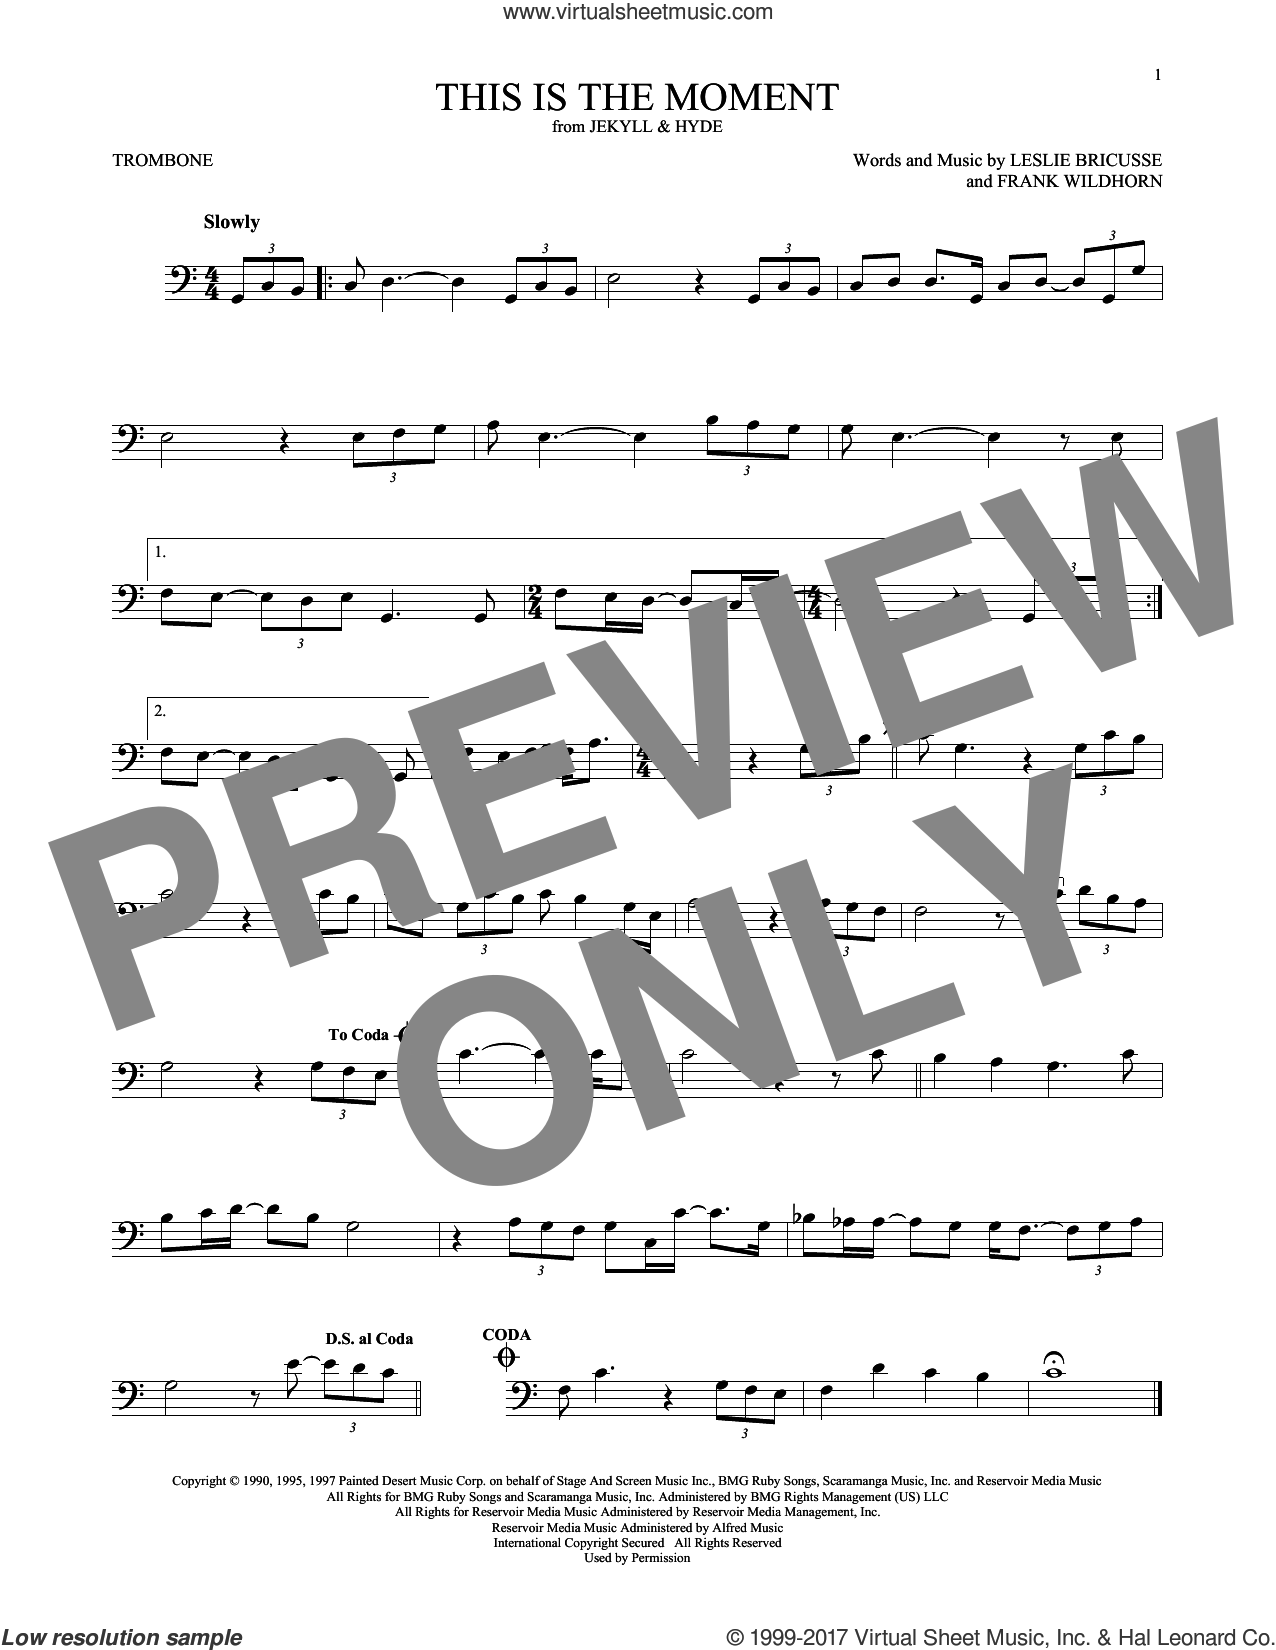 This Is The Moment sheet music for trombone solo by Leslie Bricusse and Frank Wildhorn, intermediate skill level